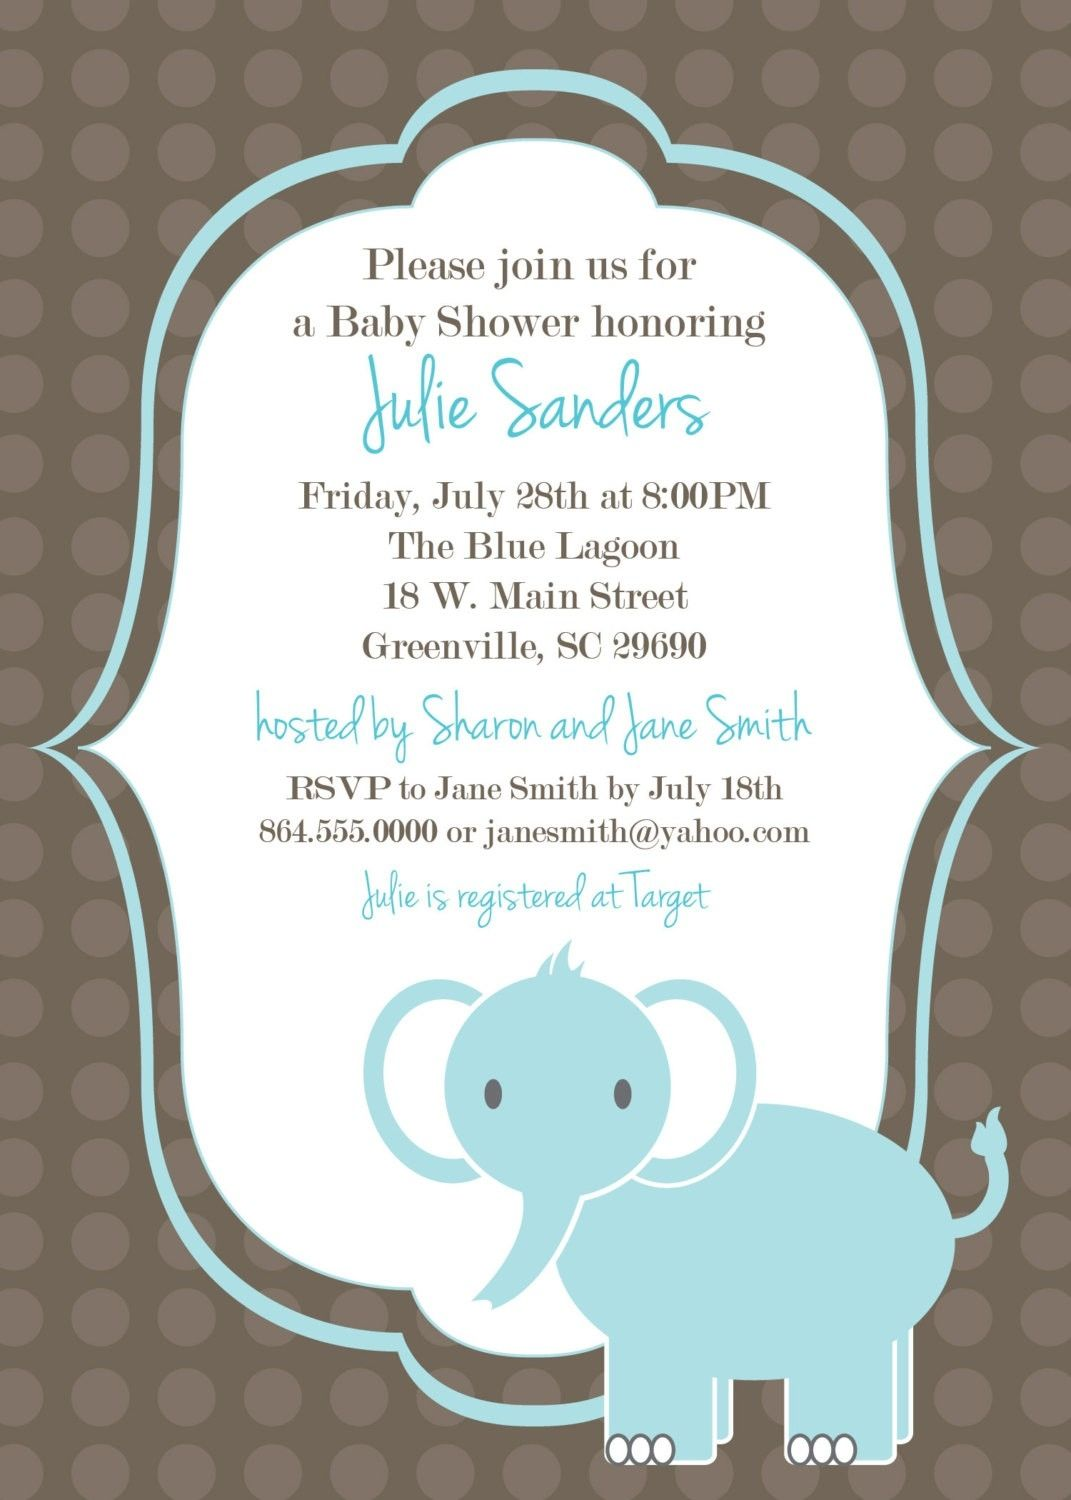 Baby Shower Invitations For Word Templates Amazing Download Baby Shower Invitation Templates Word  Setup  Pinterest .